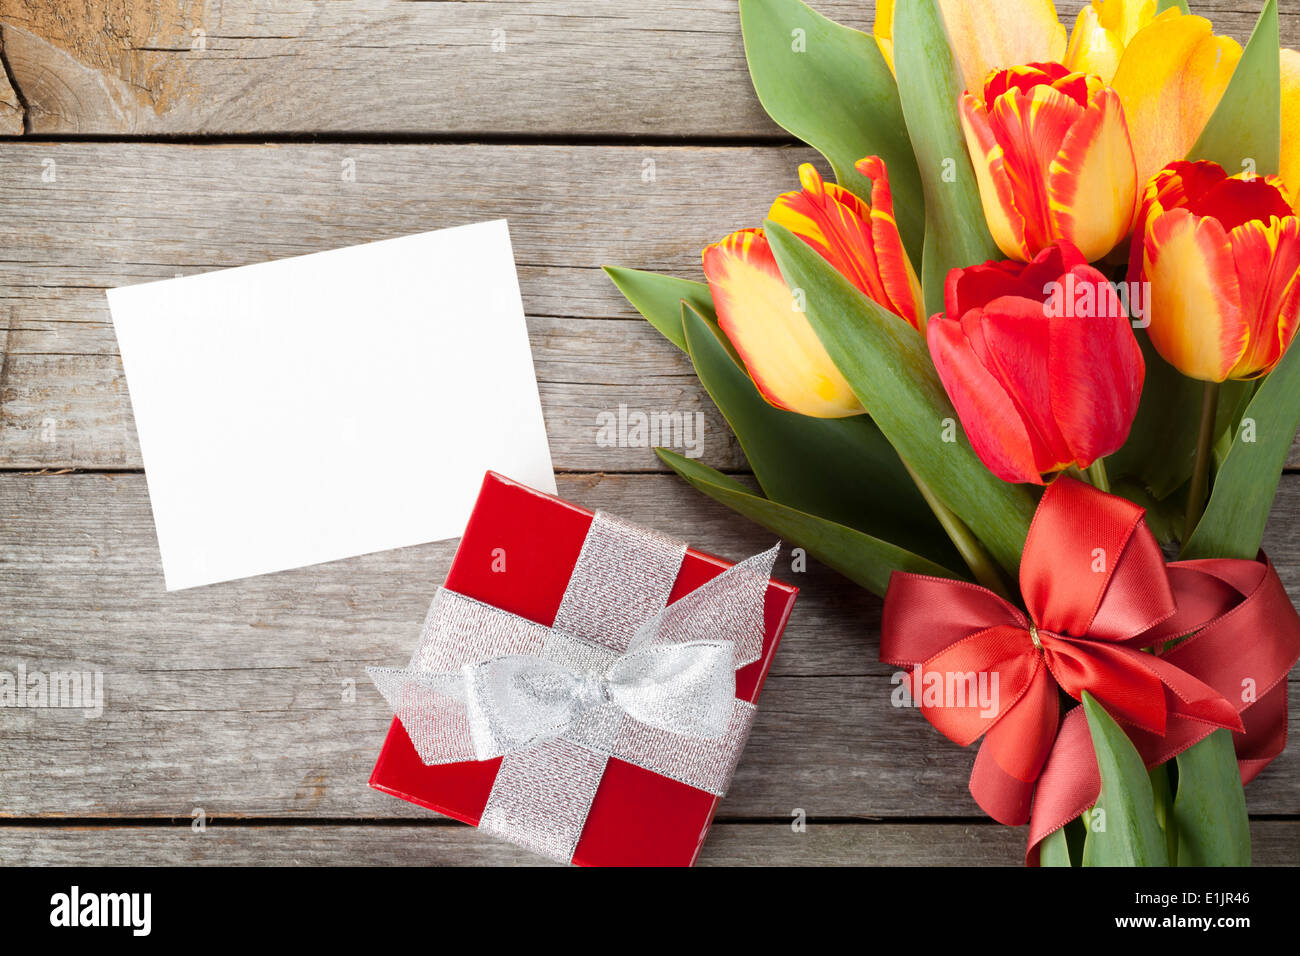 Fresh Colorful Tulips With Gift Box And Greeting Card Over Wooden Background